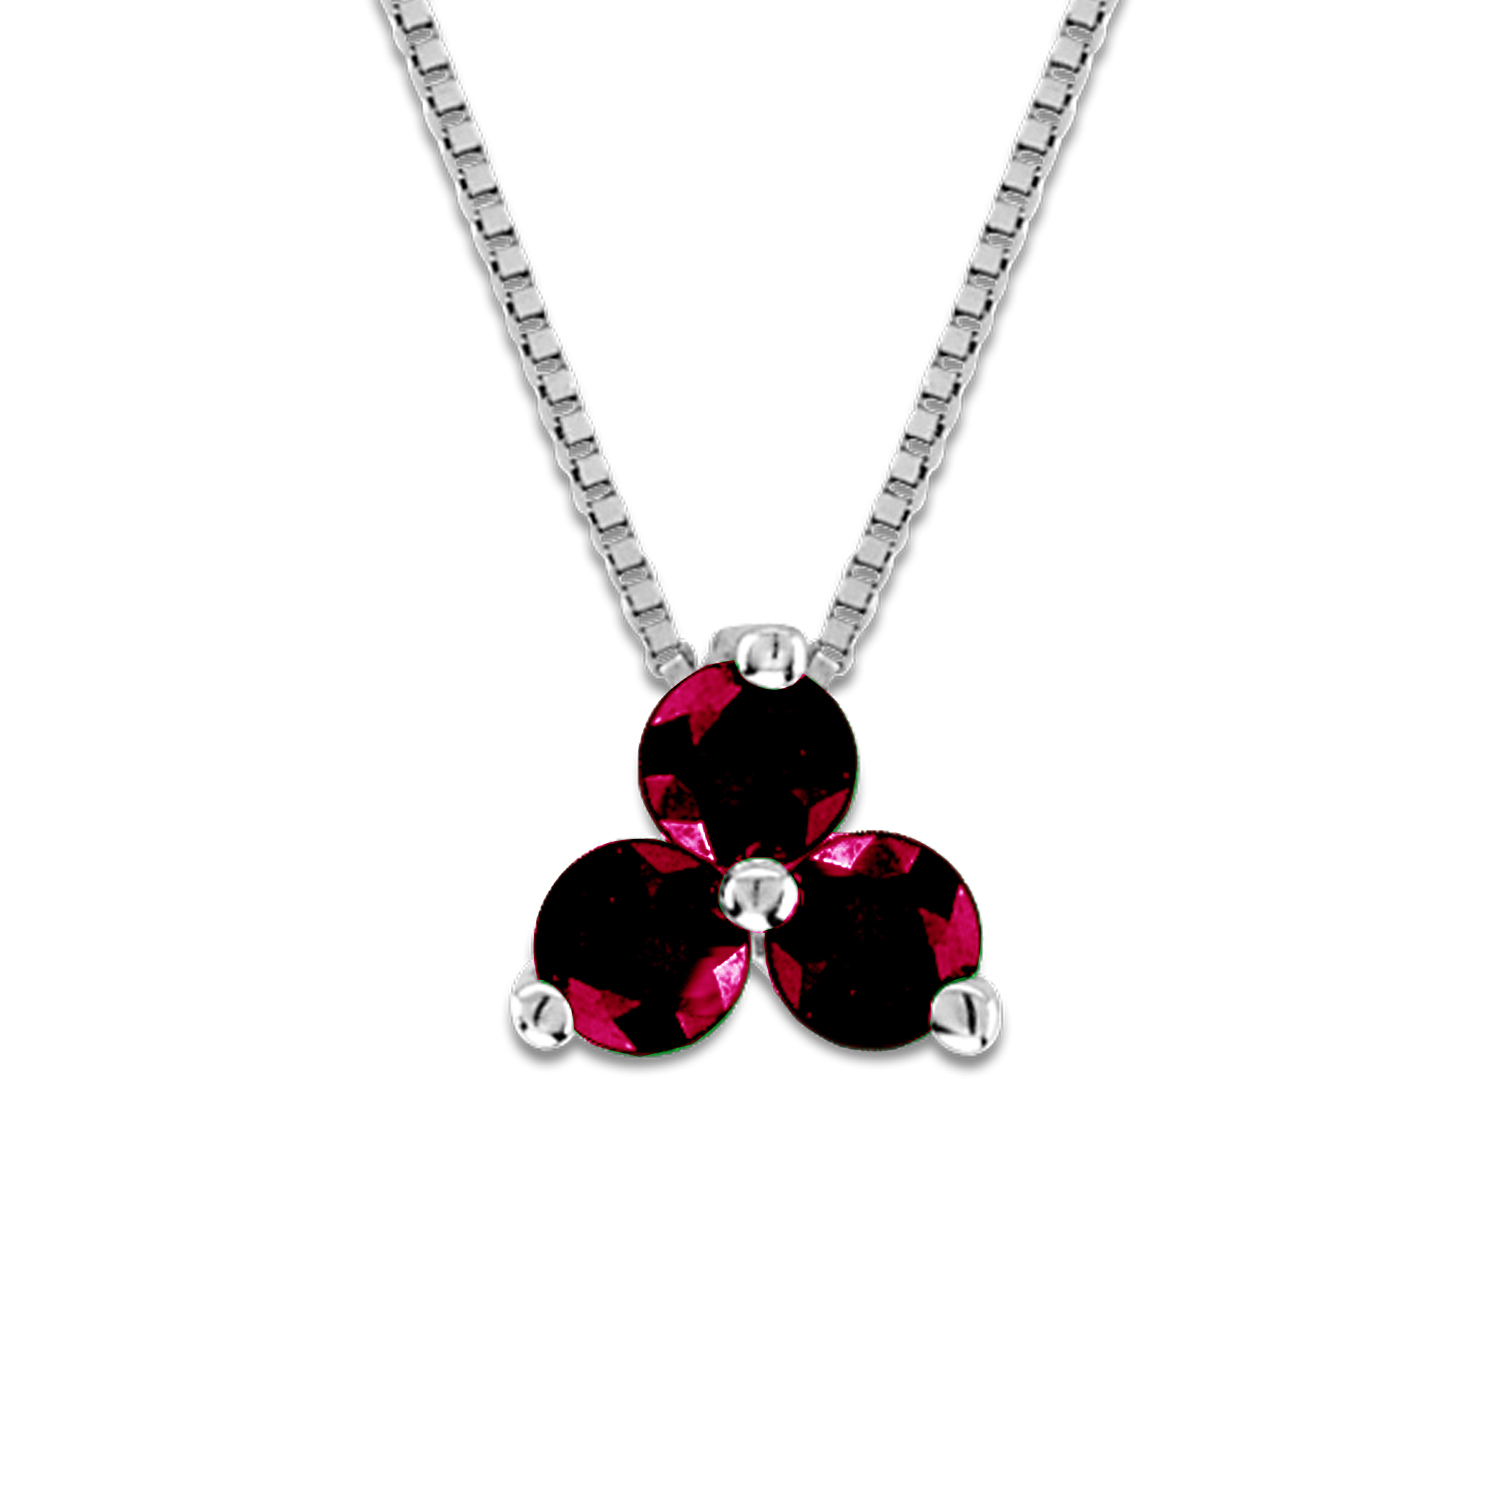 View 0.20cttw Ruby Three Stone Pendant in 14k Gold